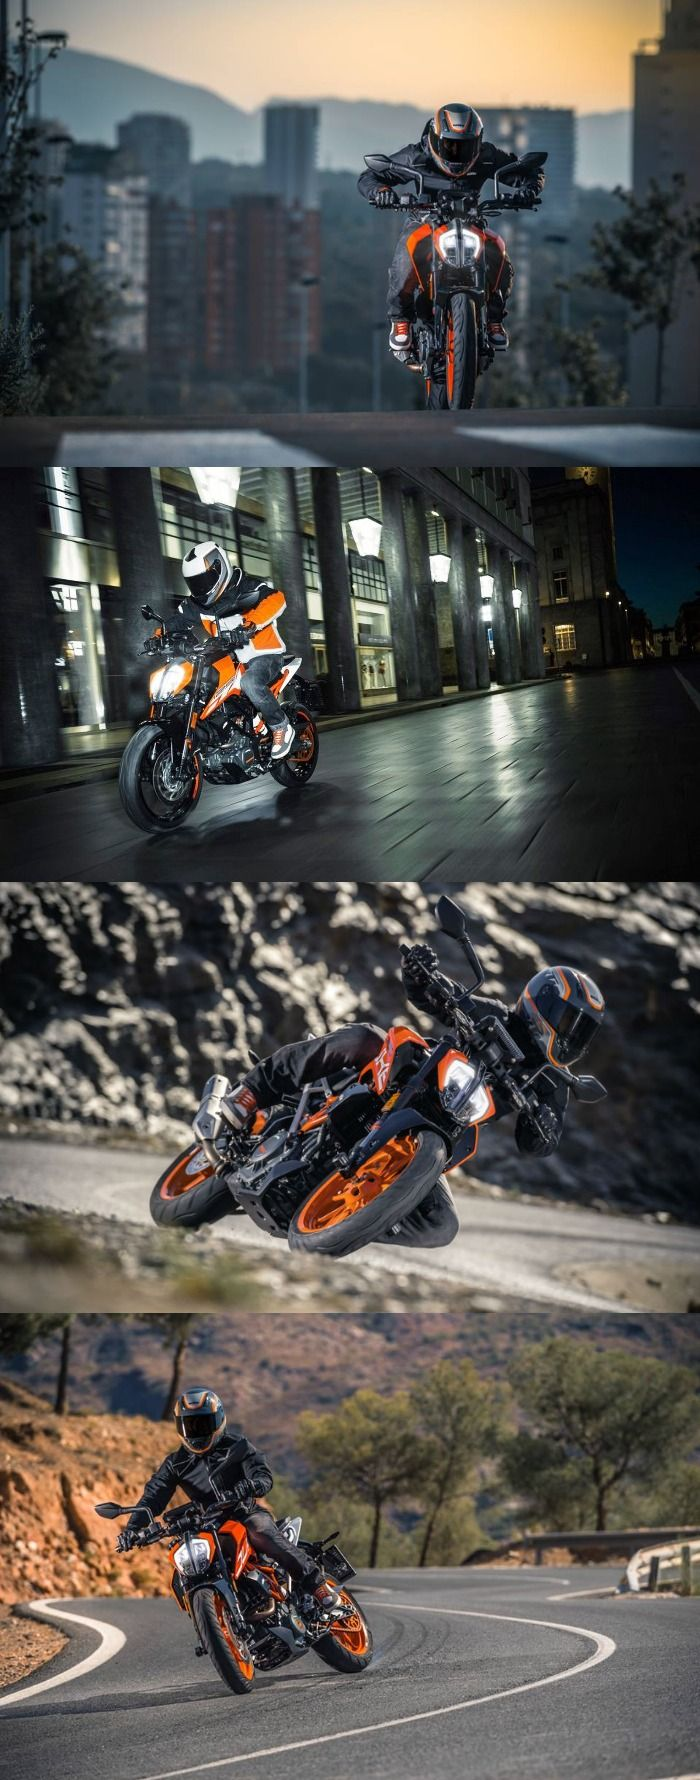 New KTM Duke 390 to Reach Indian Outlets by February 2017; Priced Higher Than Outgoing Model